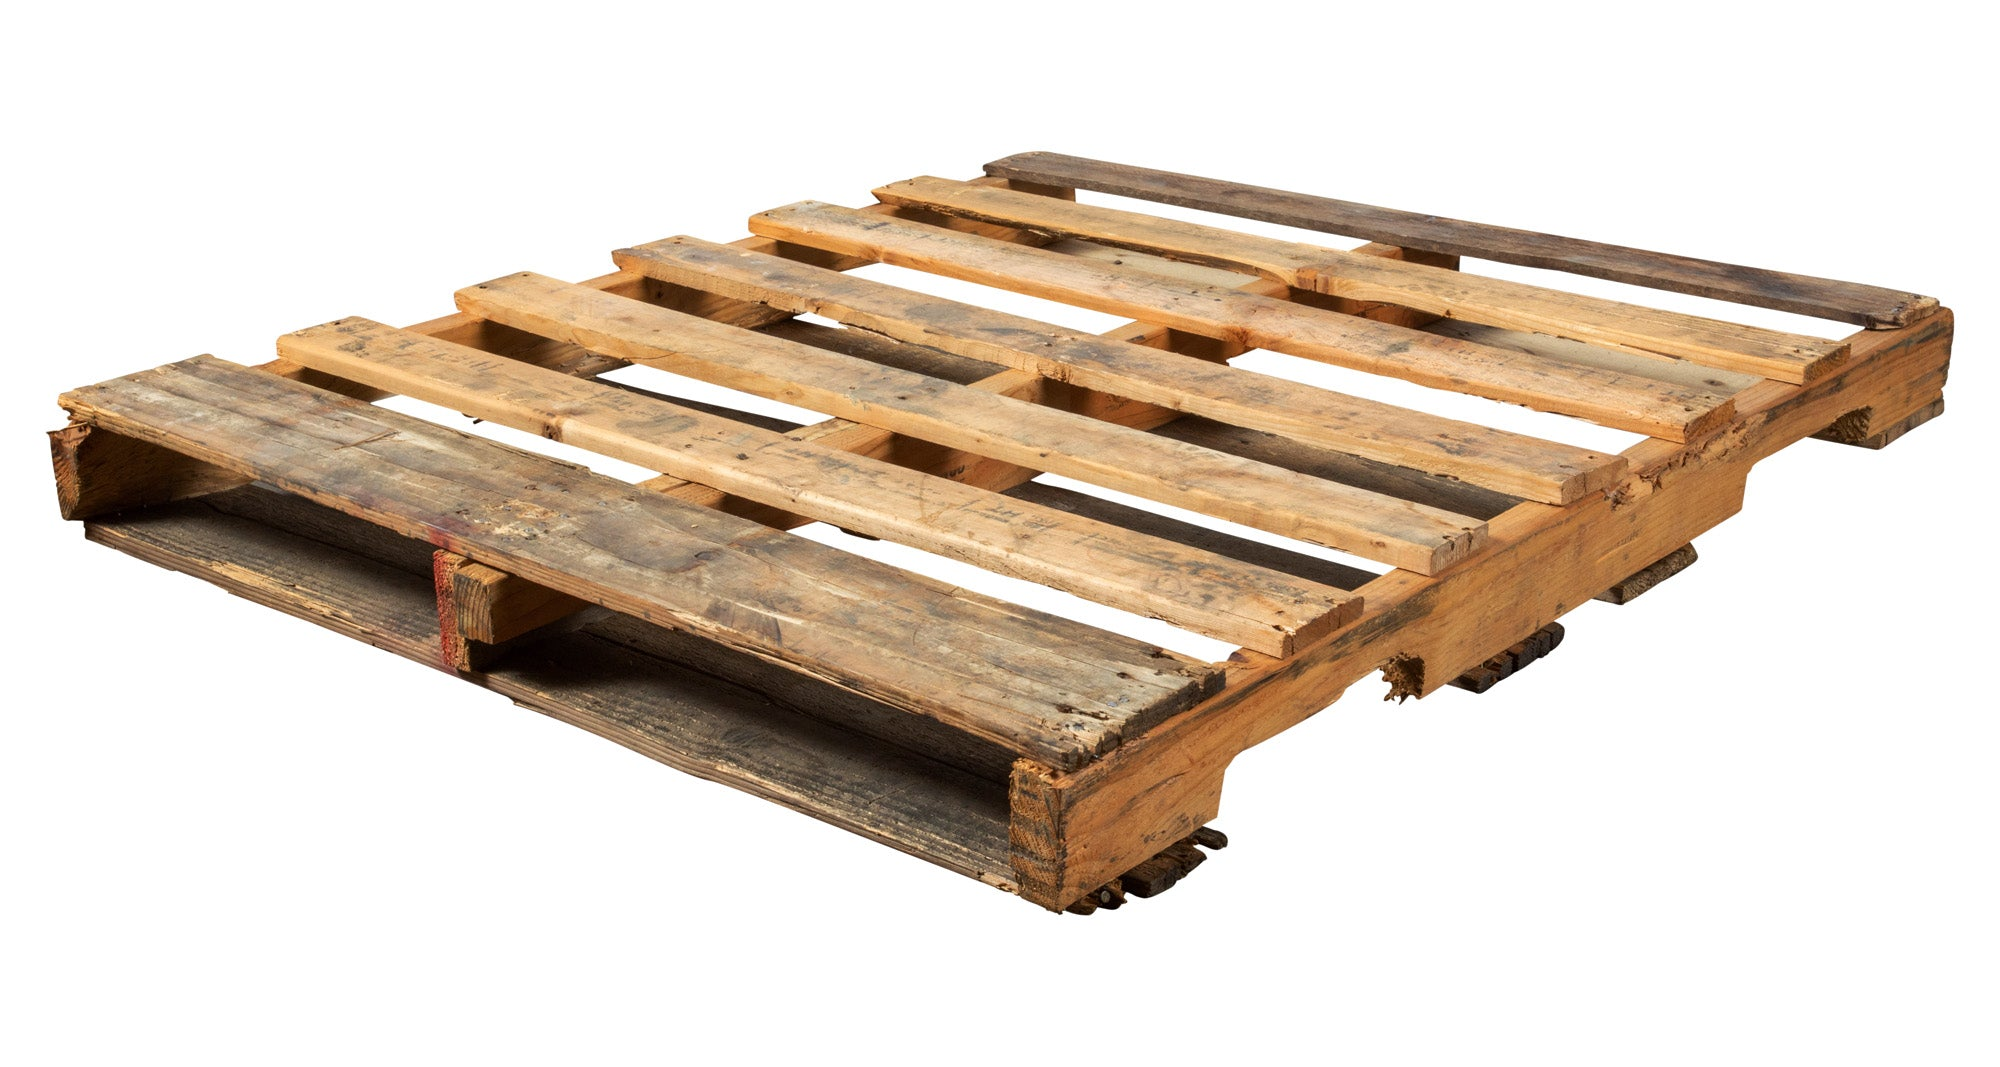 Wood Pallet - Made in the USA